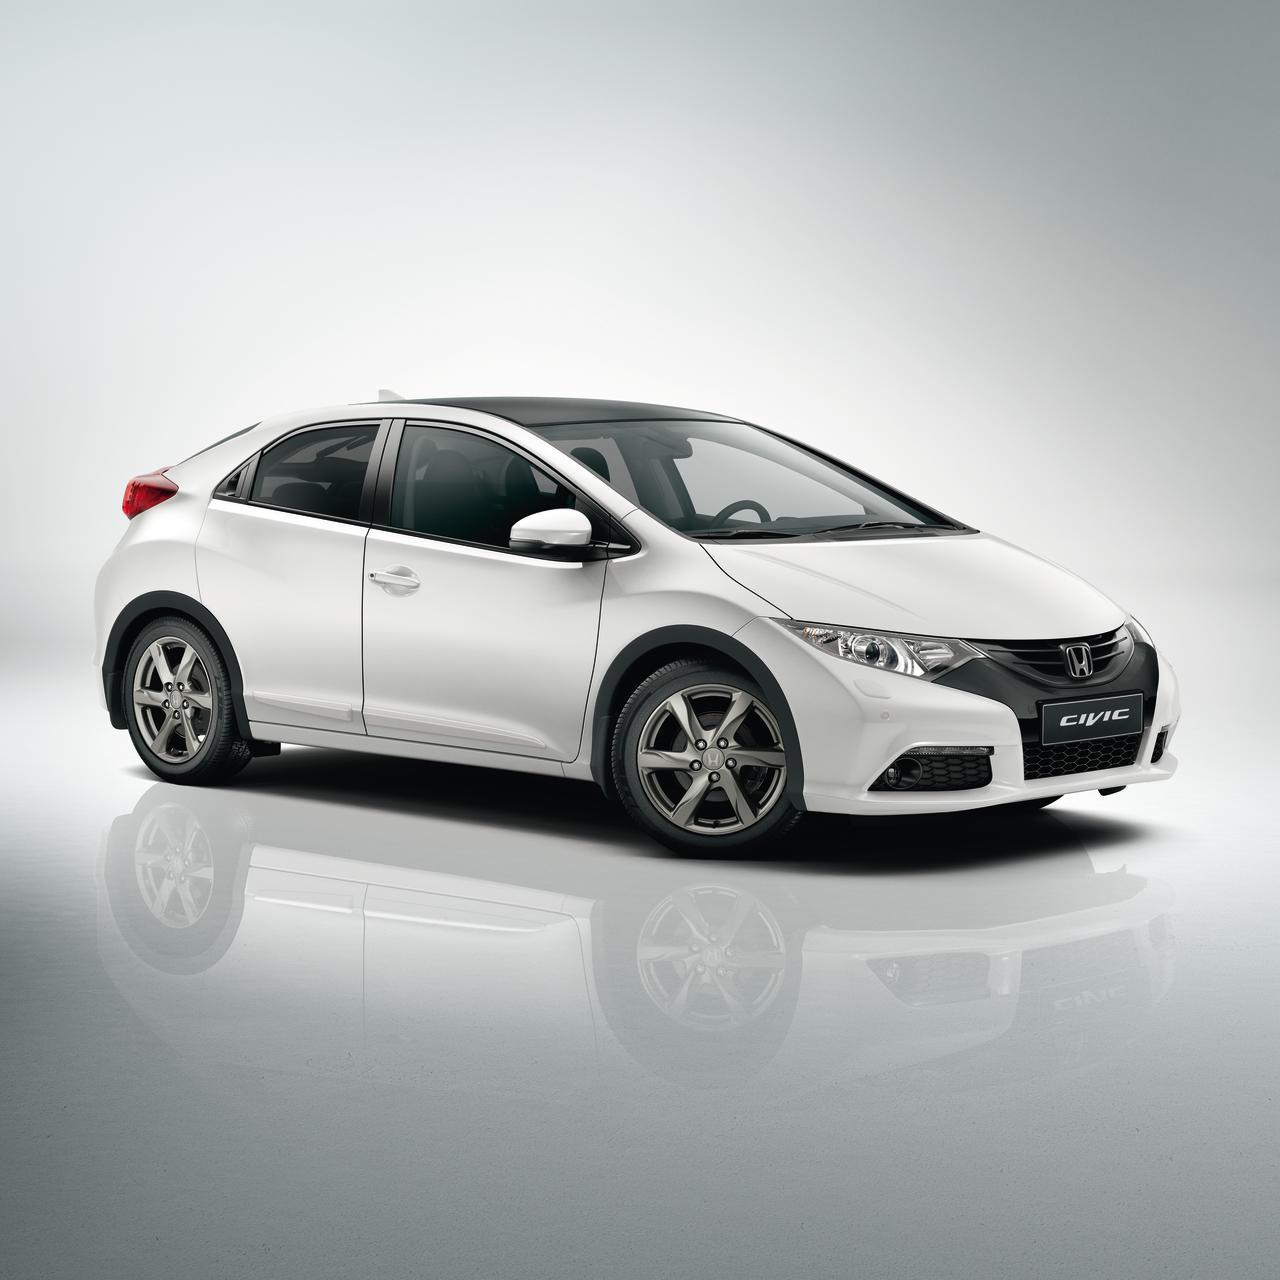 Foto de Honda Civic 2012 (102/153)